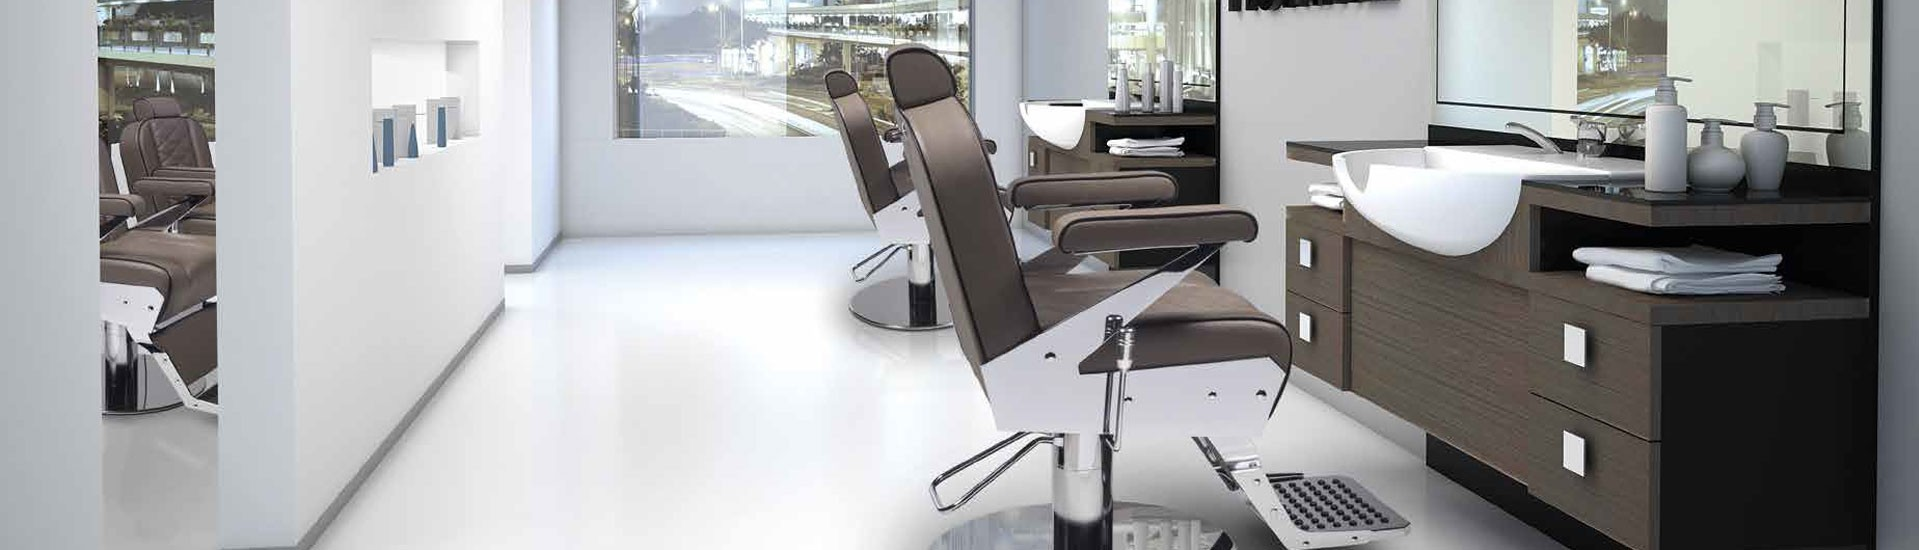 mobilier barbier coiffure homme